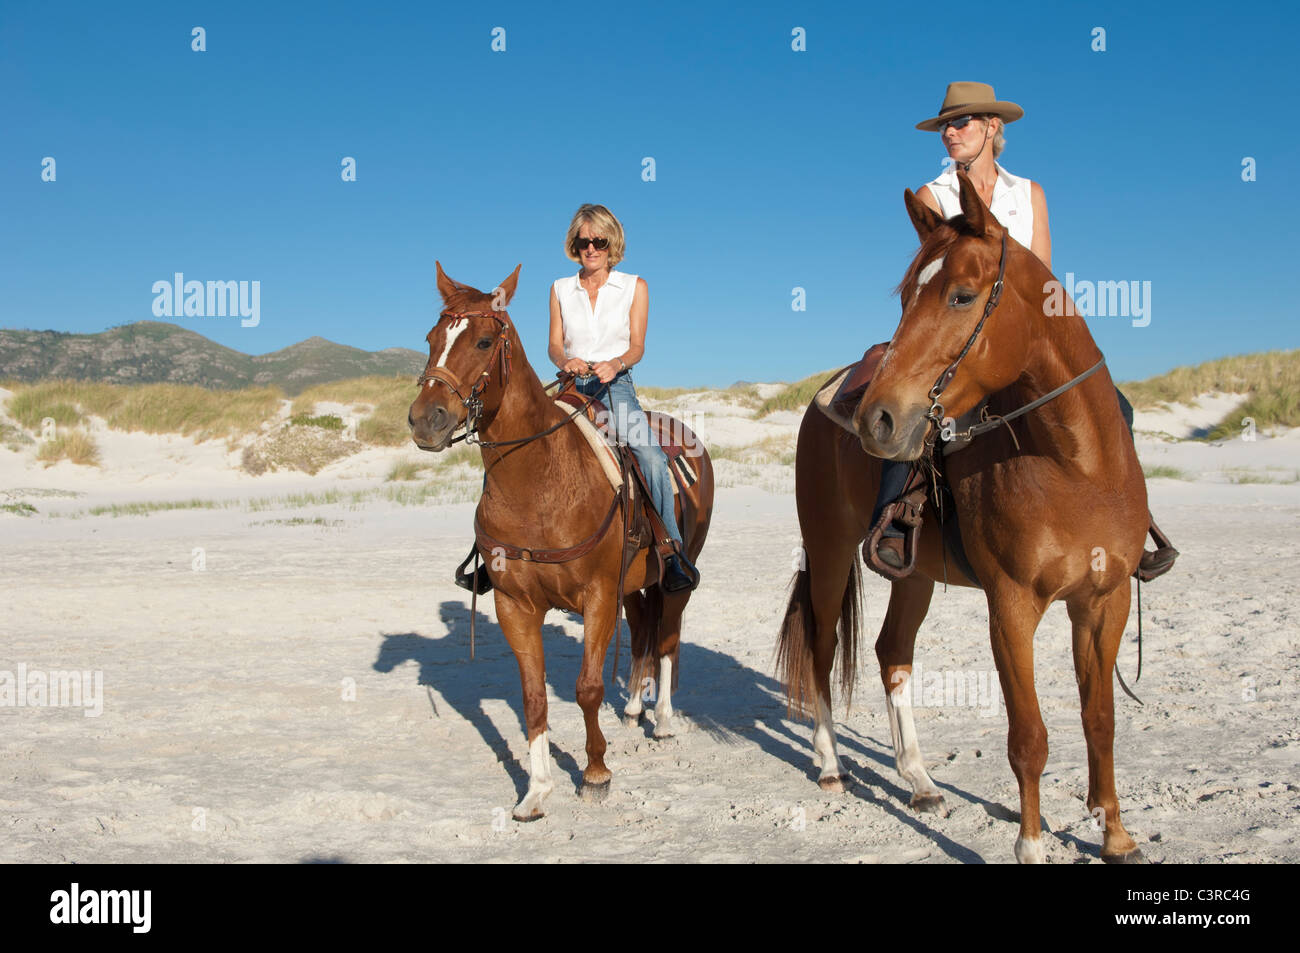 2 people riding horses on the beach stock photo 36779136 alamy 2 people riding horses on the beach publicscrutiny Gallery